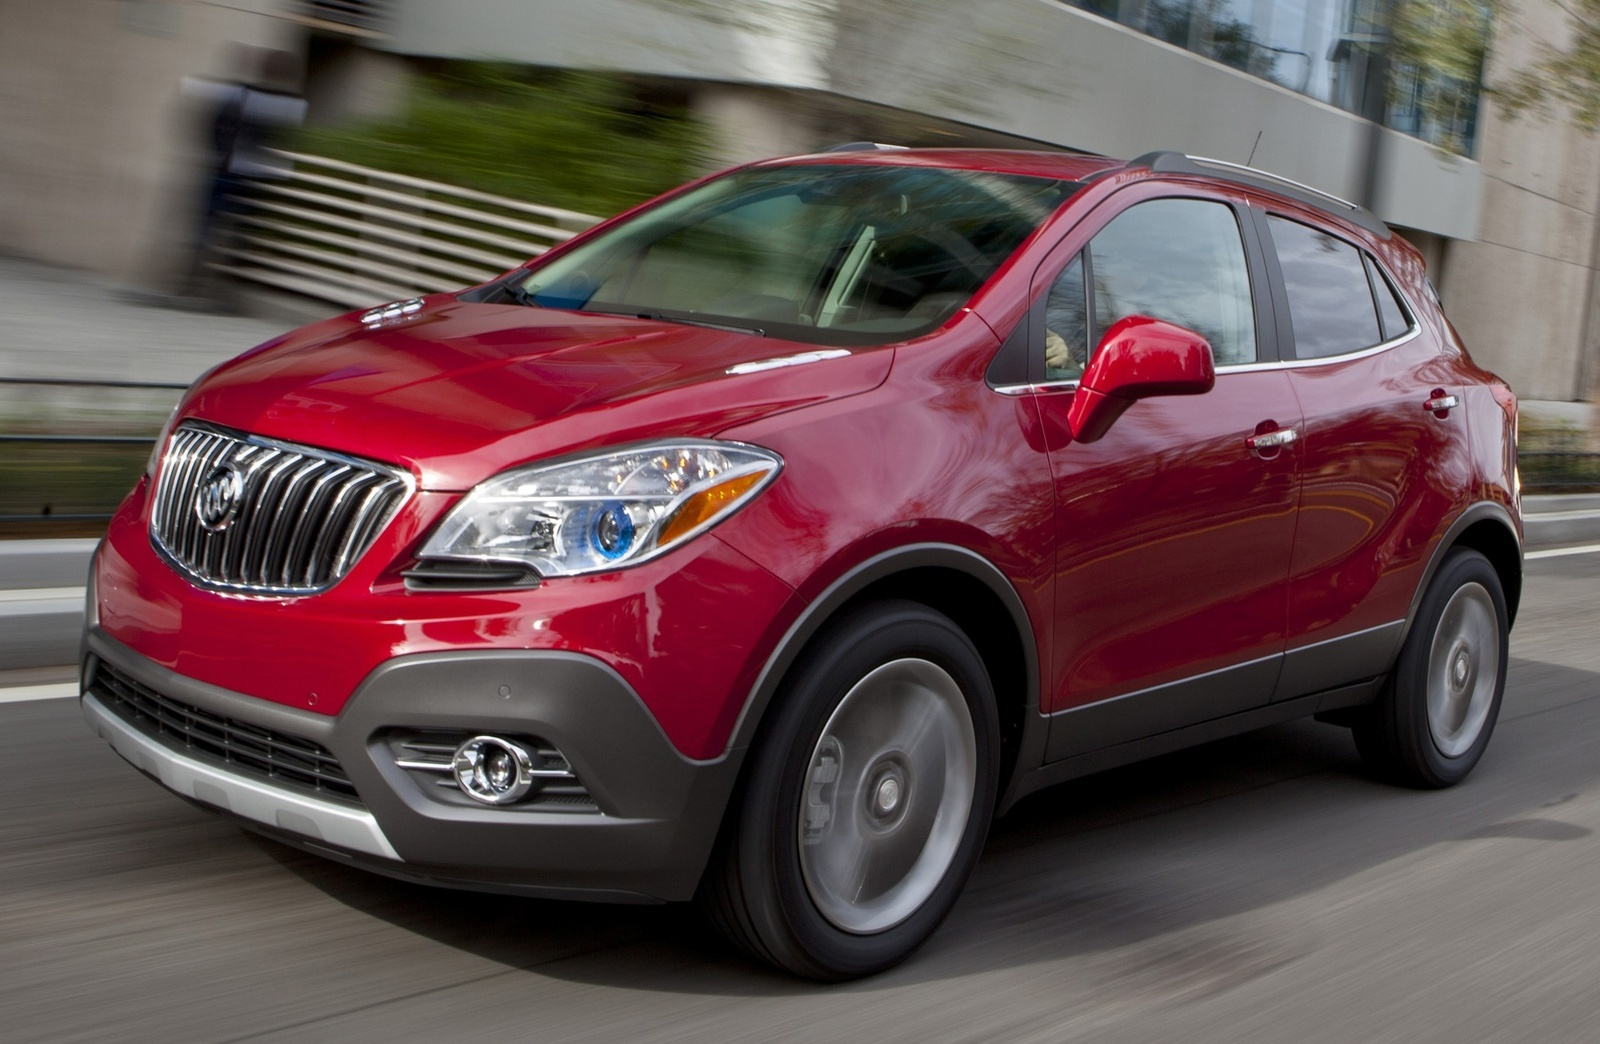 2015 Buick Encore - Overview - CarGurus